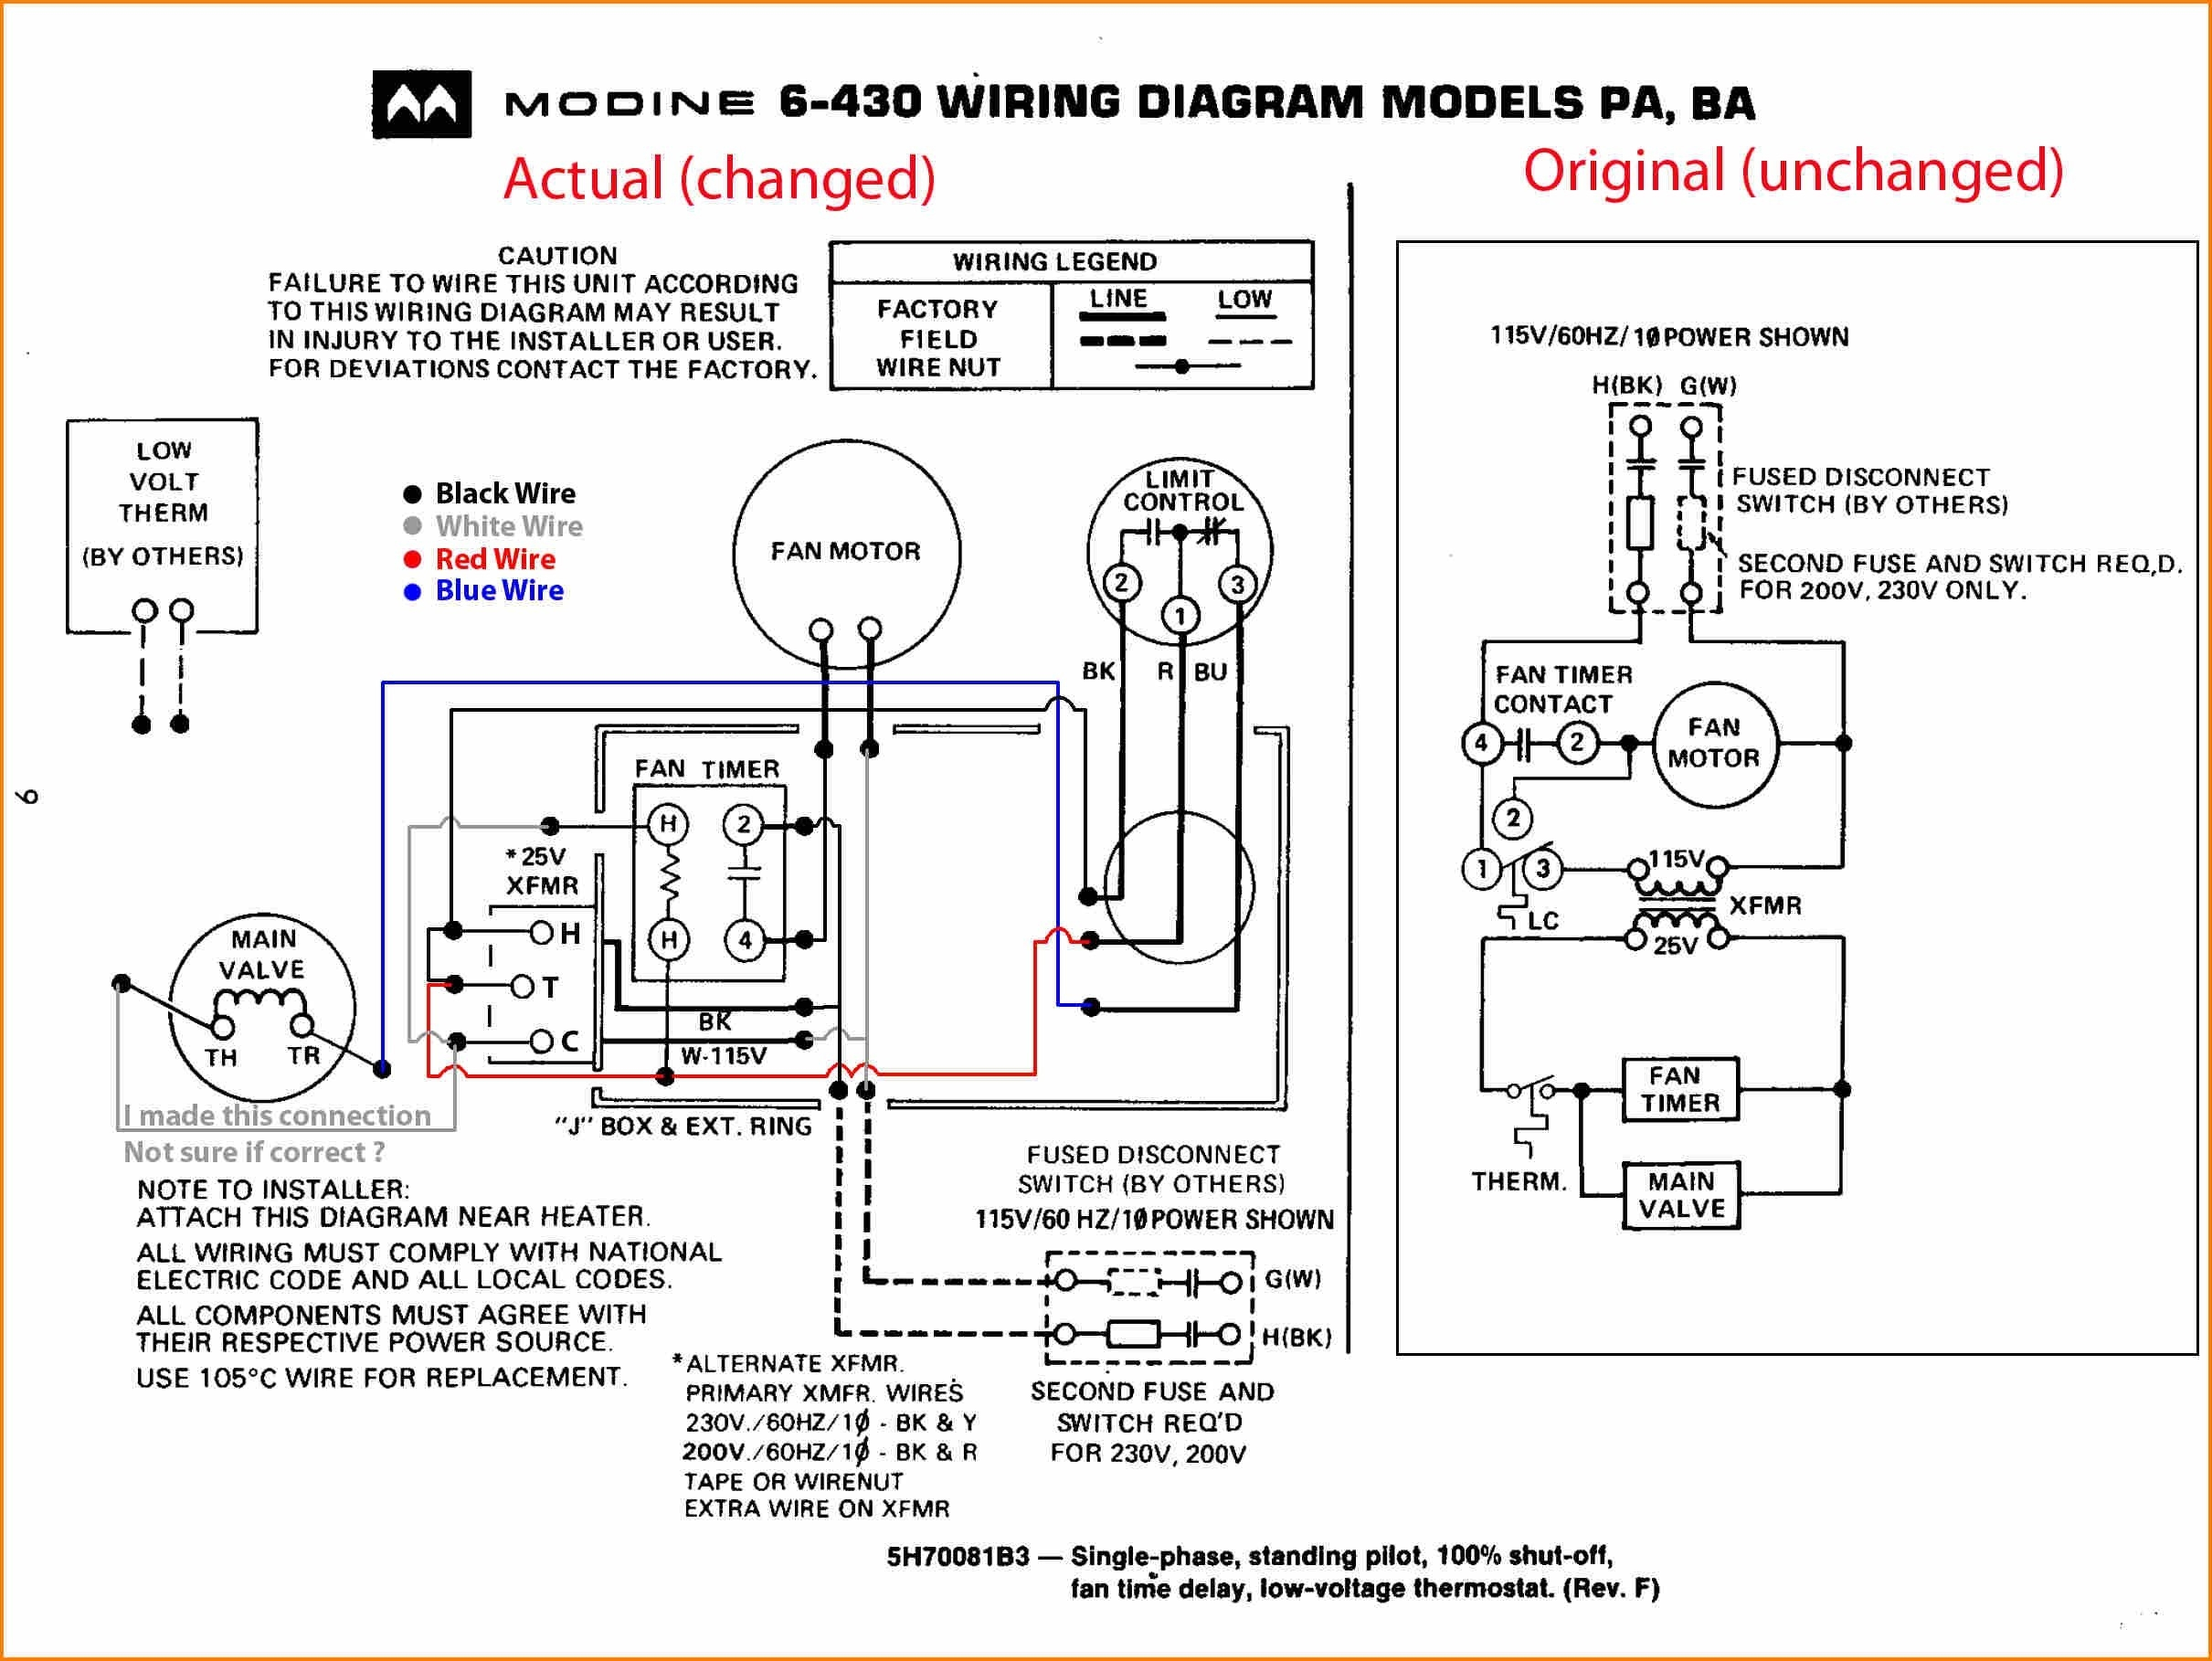 [SCHEMATICS_4JK]  Fasco D701 Wiring Diagram - 2001 Cadillac Sts Bose Amp Wiring Diagram for Wiring  Diagram Schematics | Gm Blower Motor Wiring Diagram |  | Wiring Diagram Schematics